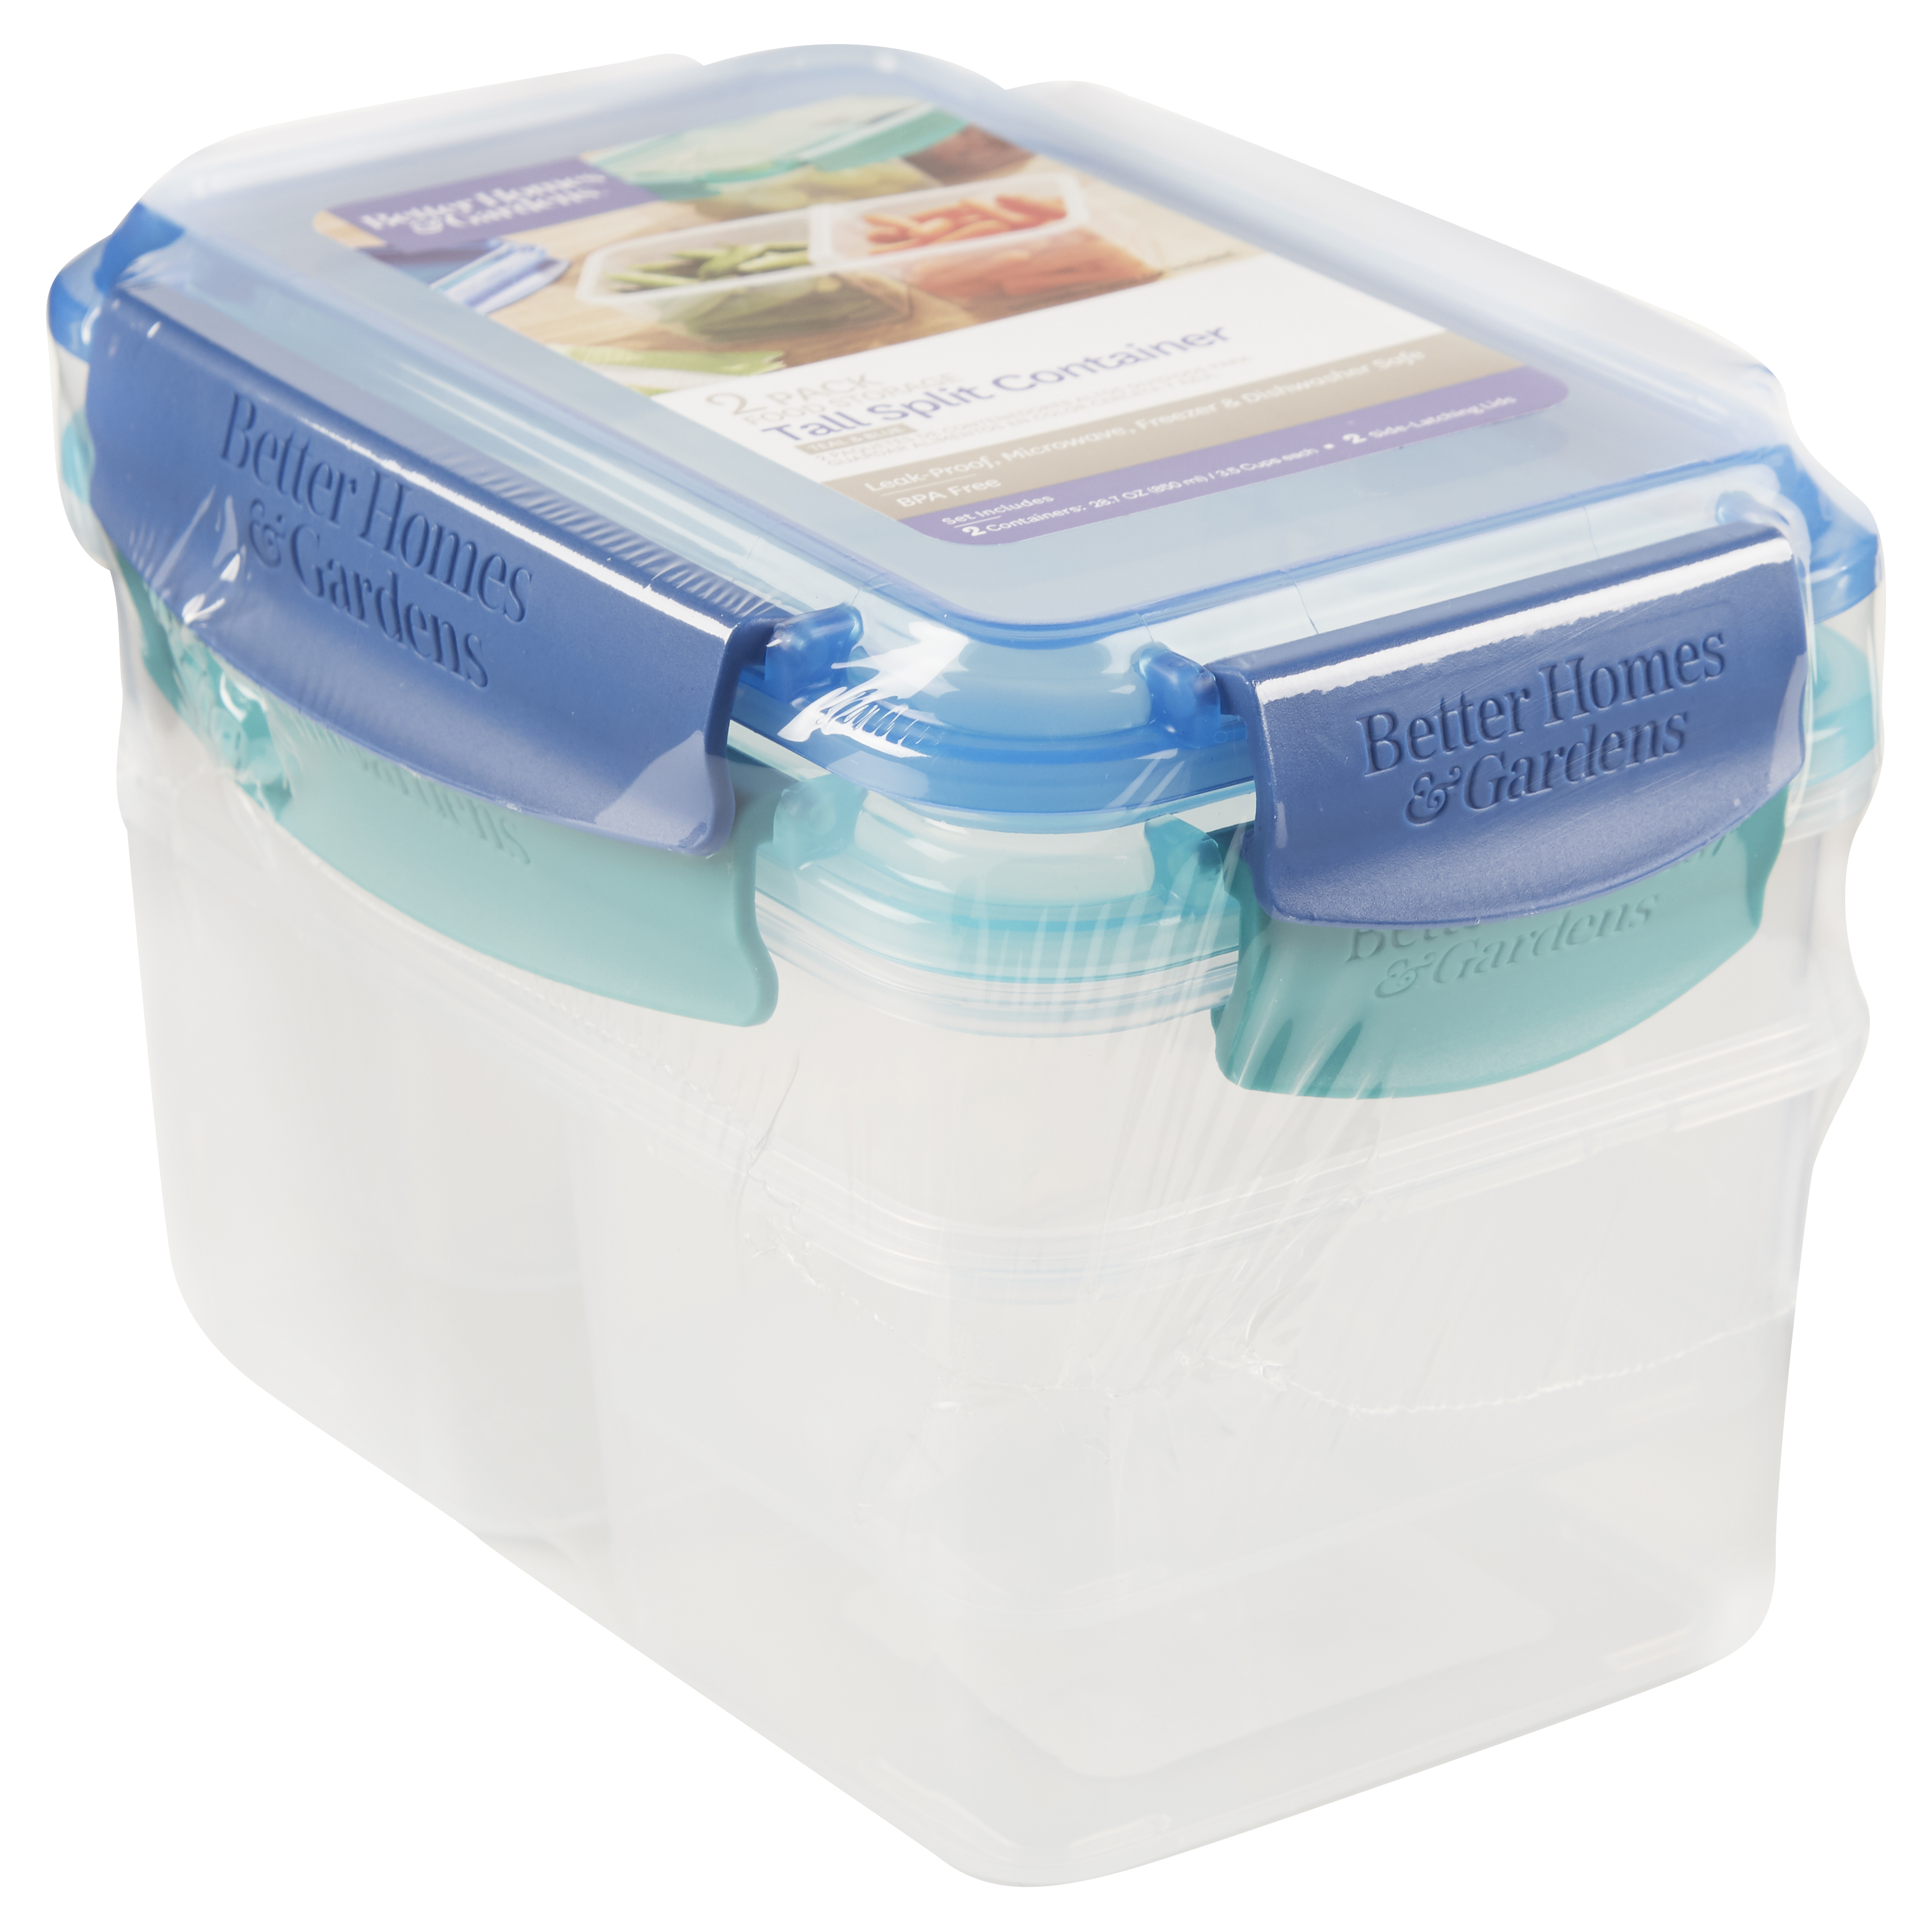 Better Homes & Gardens Food Storage Tall Split Containers, Set of 2